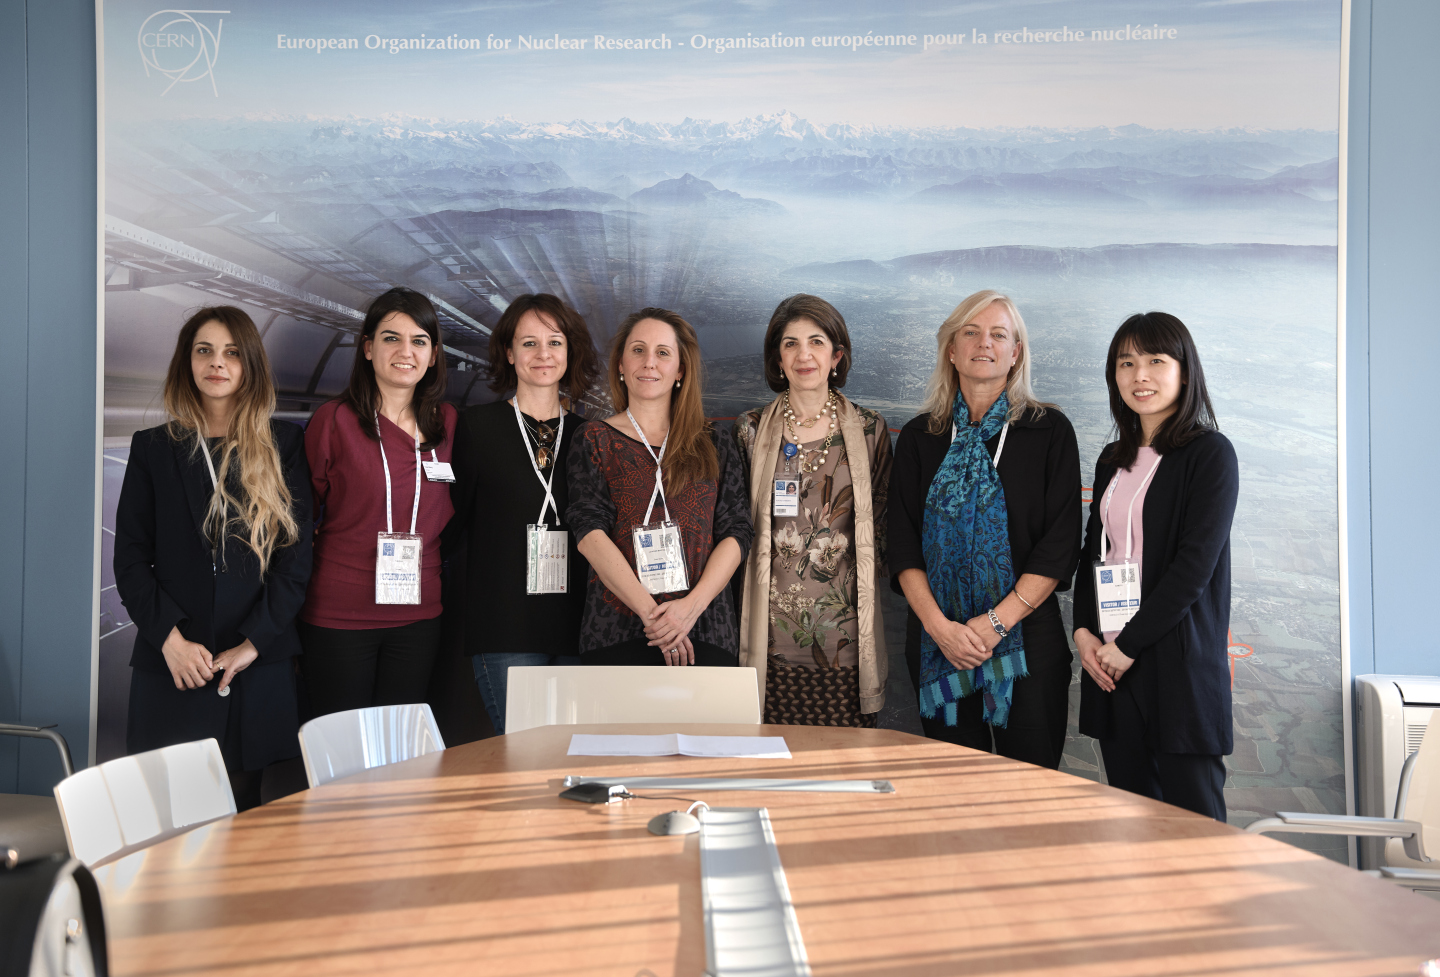 UNESCO-L'Oréal women in science laureates and rising talents with CERN Director-General, Fabiola Gianotti.